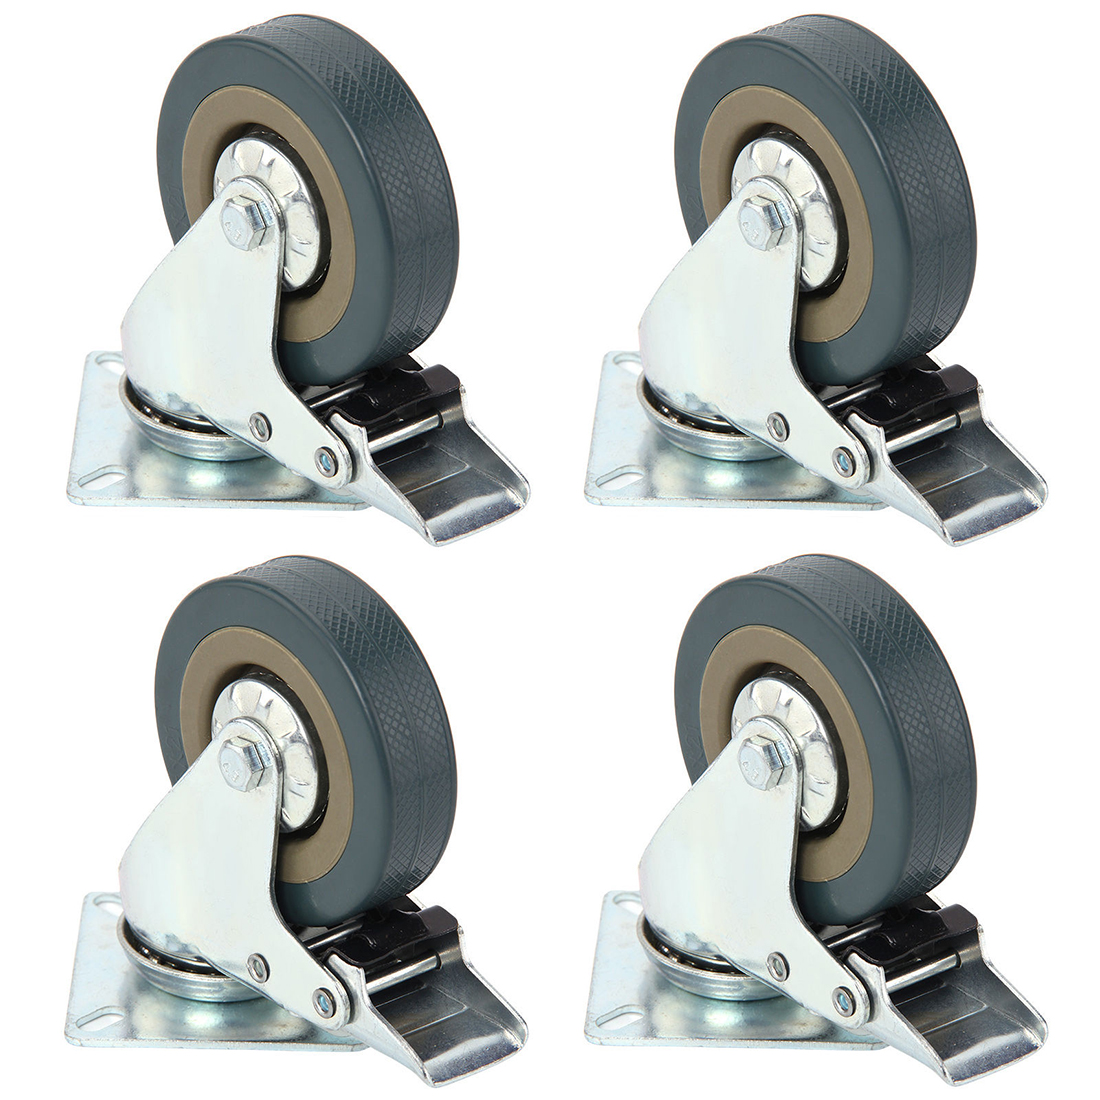 Furniture Hardware 4 X Heavy Duty Swivel Castor Wheels 50mm With Brake For Trolley Furniture Home Improvement